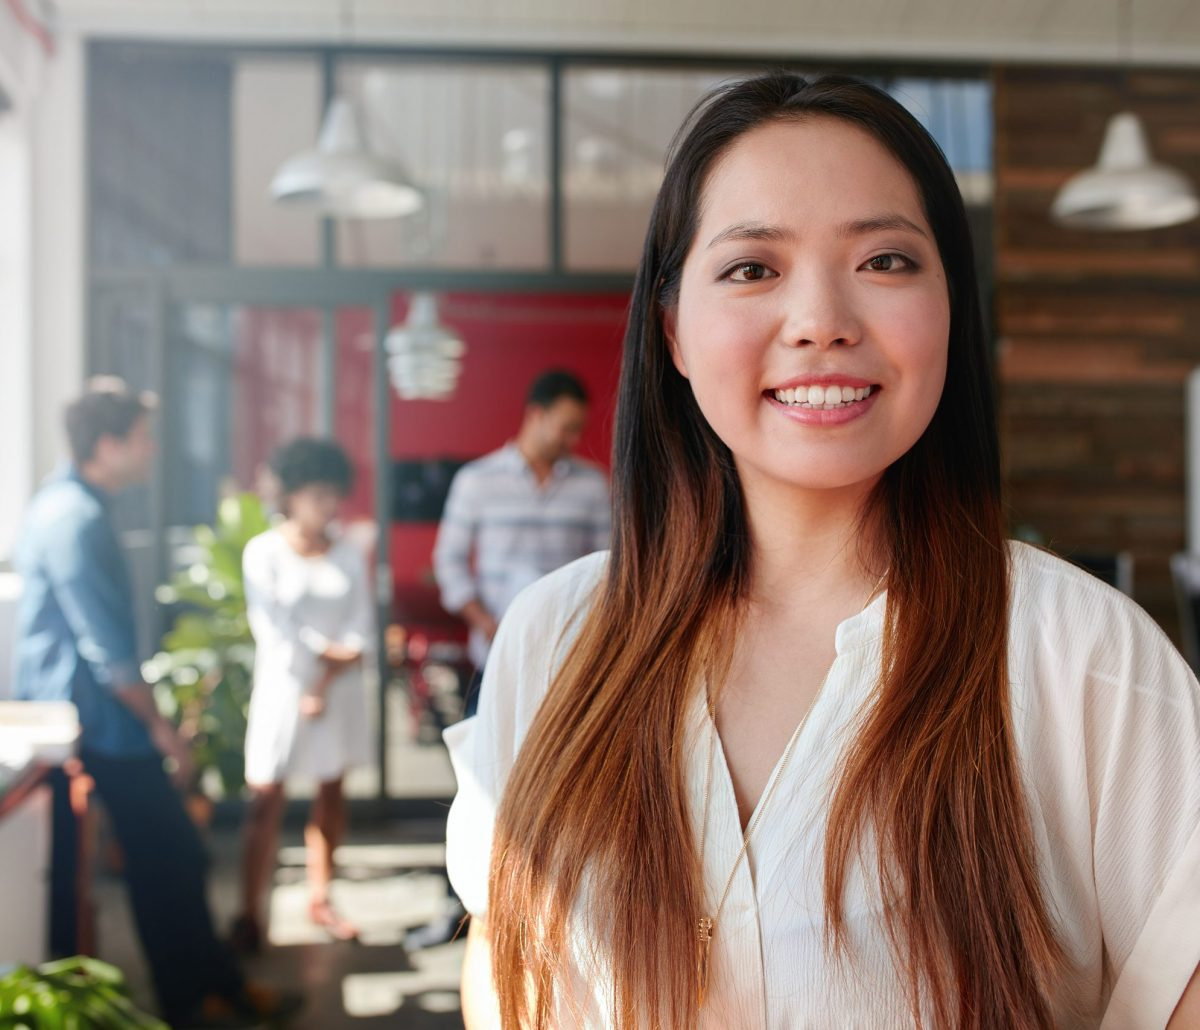 Smiling young businesswoman looking at camera and her colleagues are standing in the background. Young asian female creative professional.